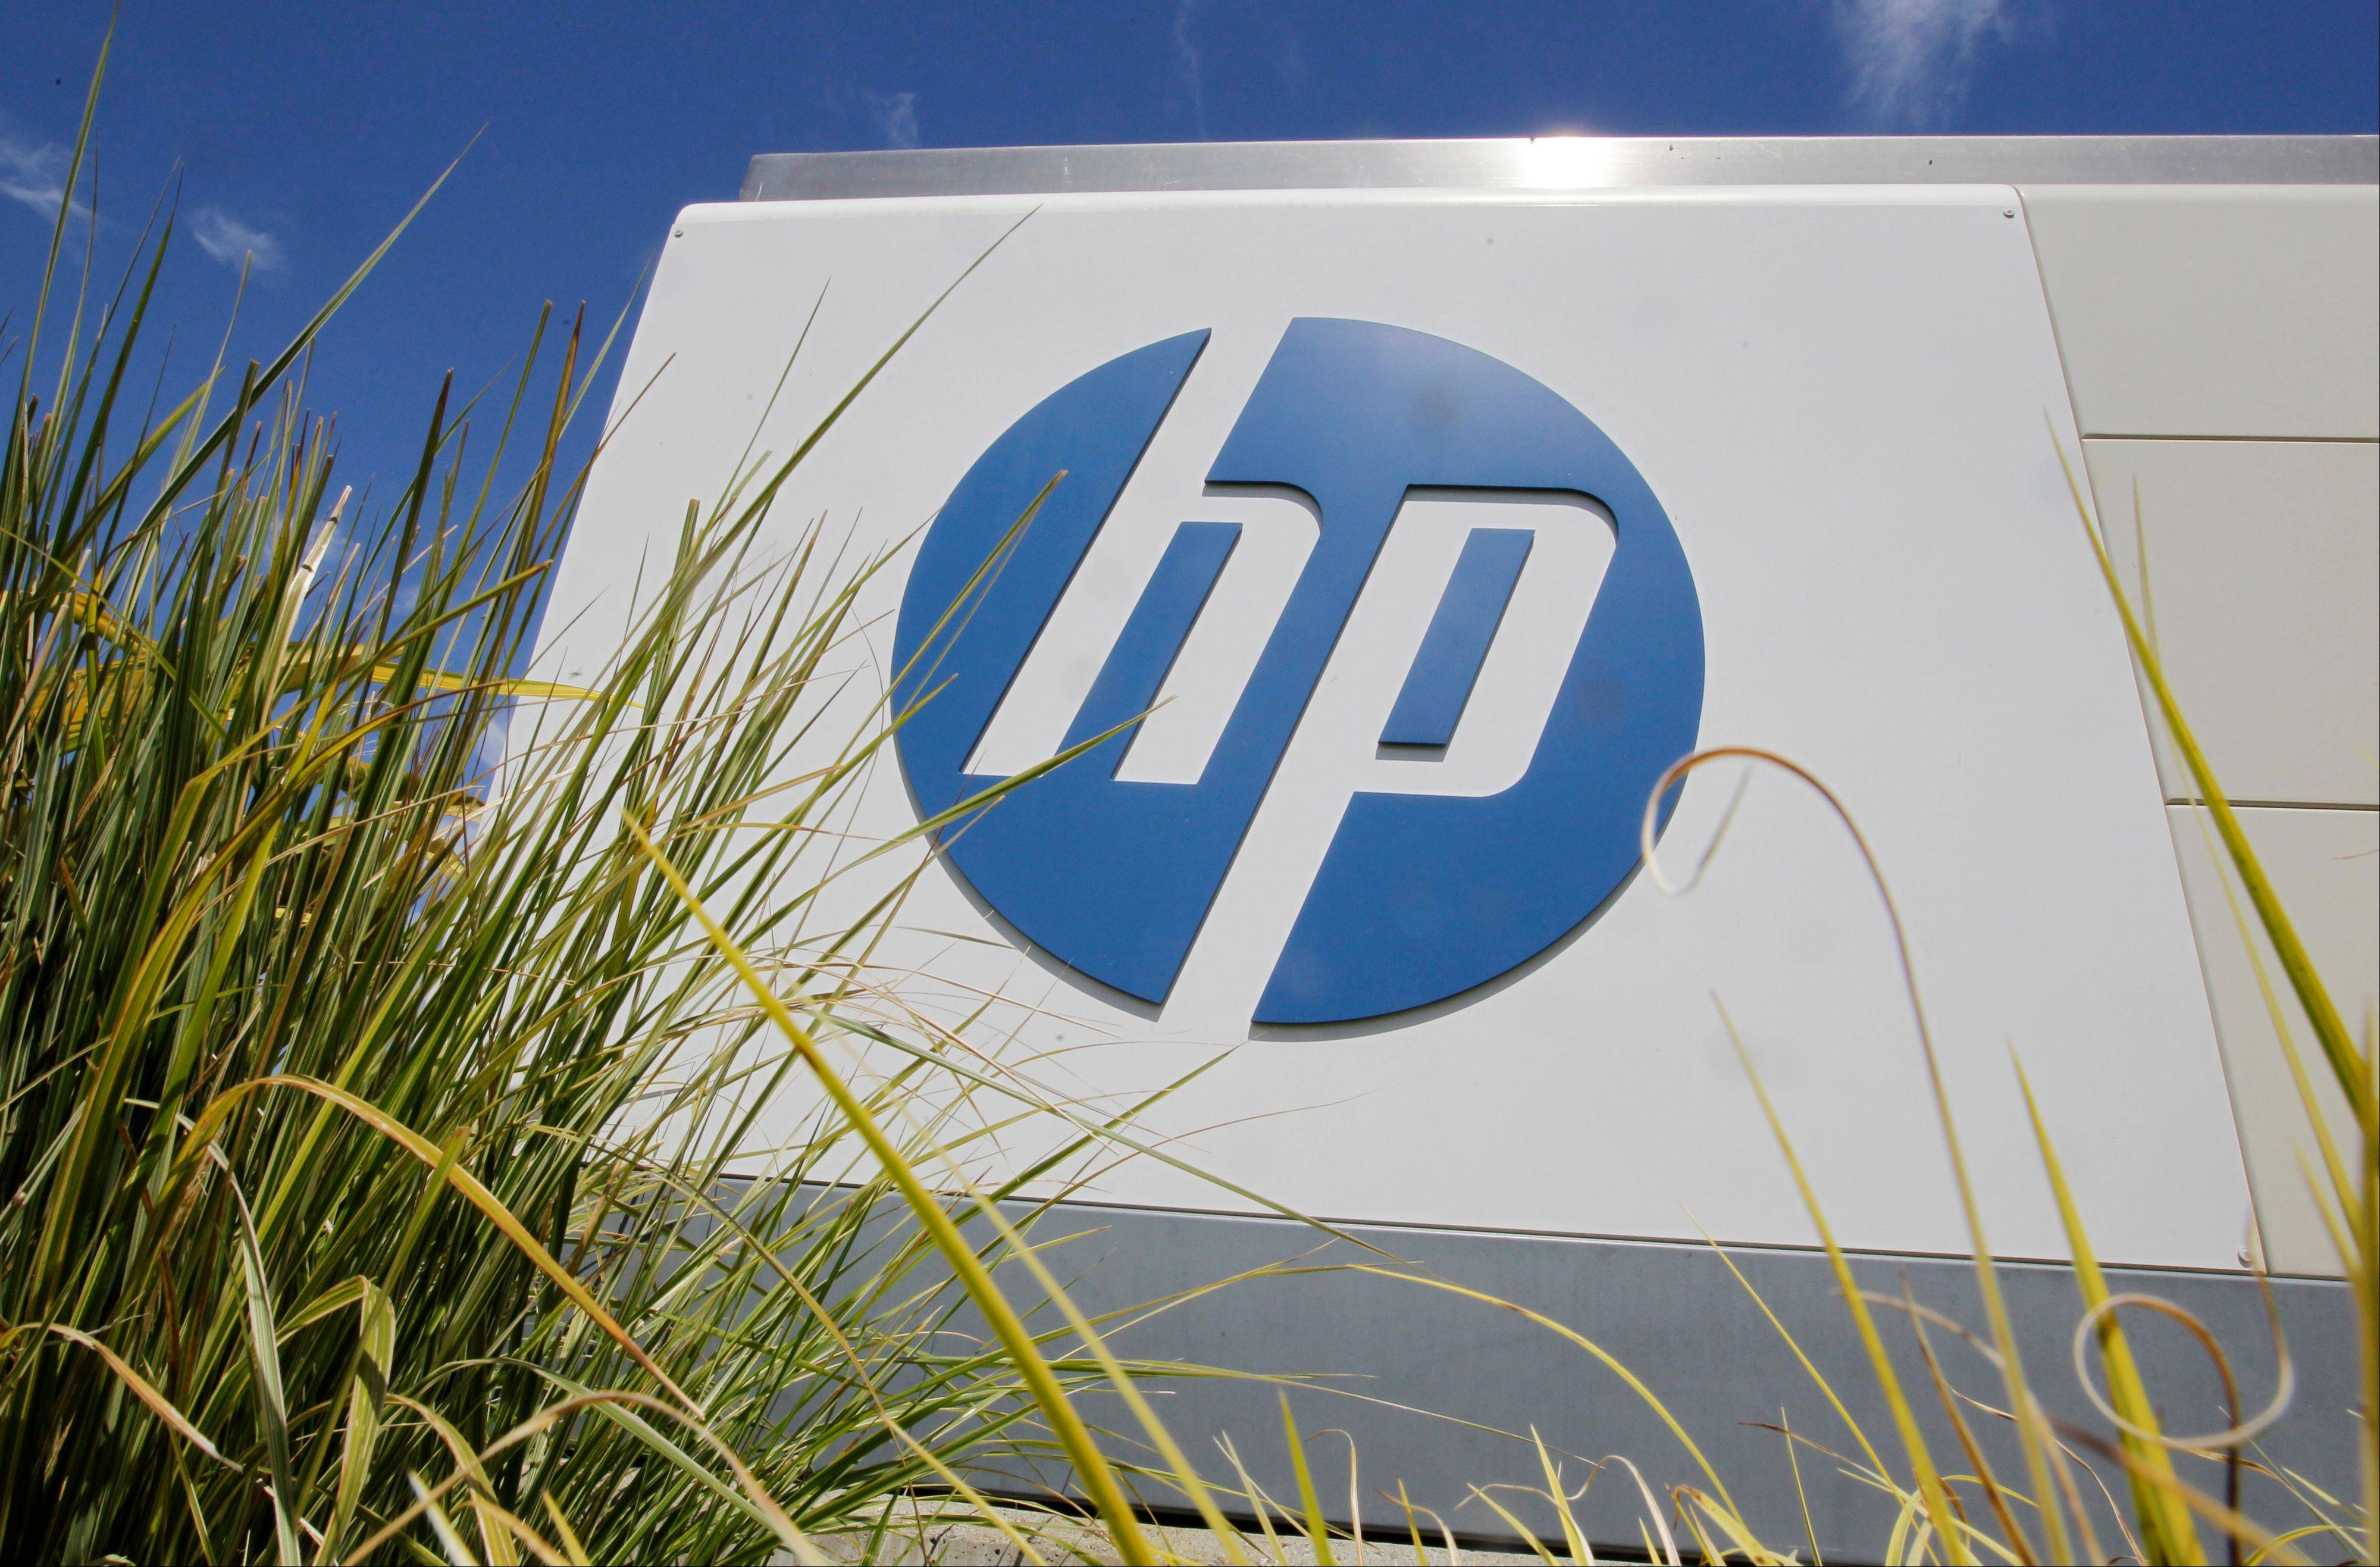 FILE - In this Aug. 21, 2012, file photo, the Hewlett-Packard Co. logo is seen outside the company's headquarters in Palo Alto, Calif. Hewlett-Packard Co. reports quarterly financial results after the market closes on Tuesday, Nov. 26, 2013. (AP Photo/Paul Sakuma, File)